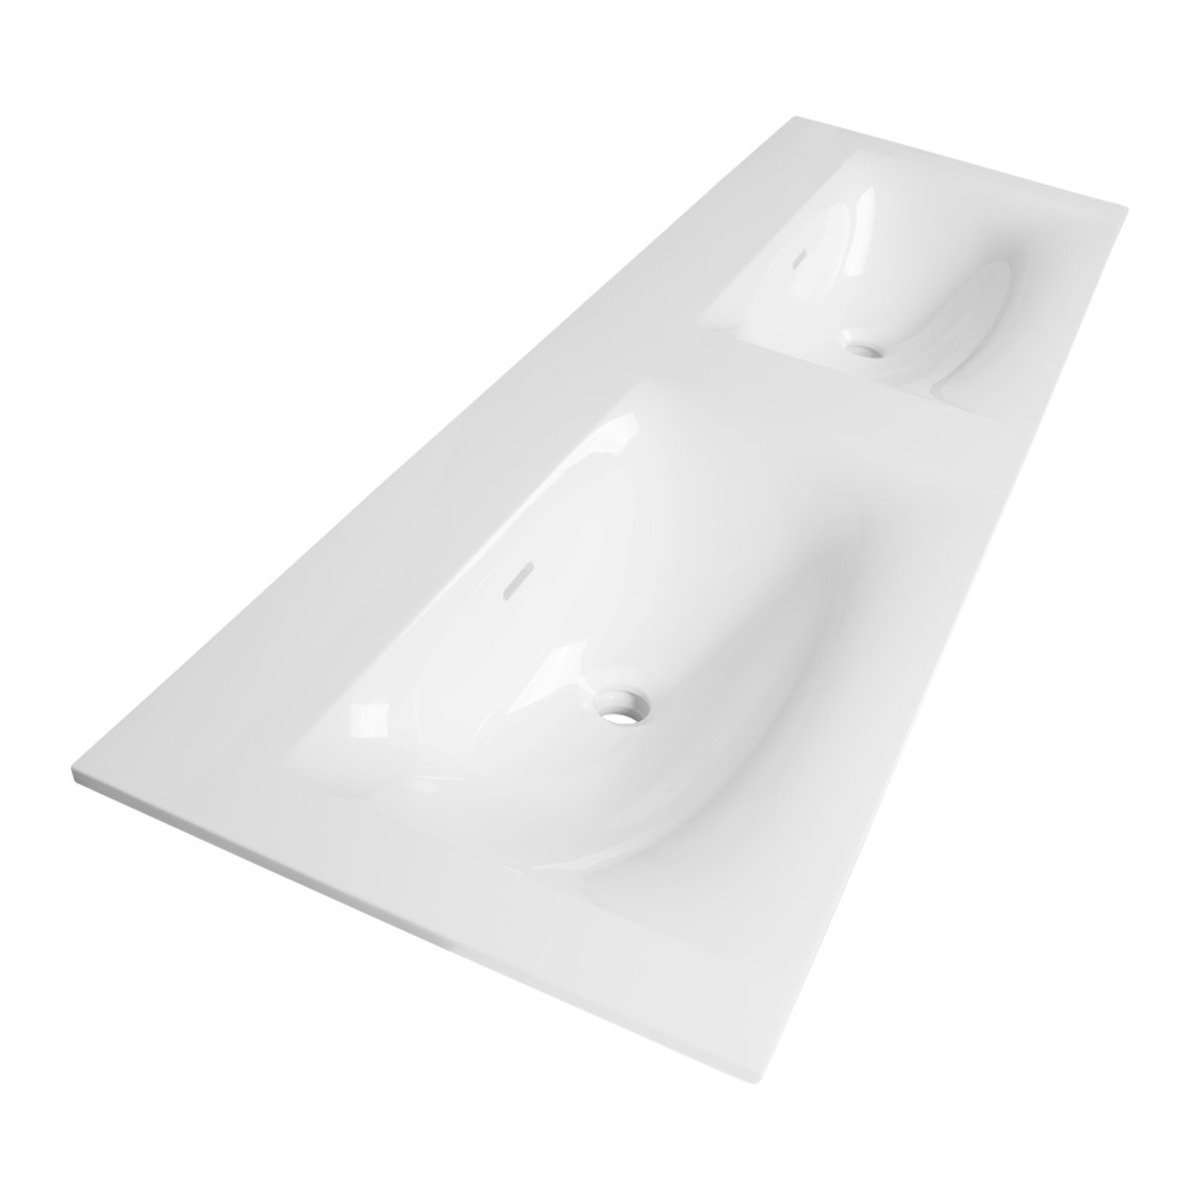 Saniclass Fiora Plan vasque 140cm finestone 2 vasques 2 trous de robinet  Blanc brillant